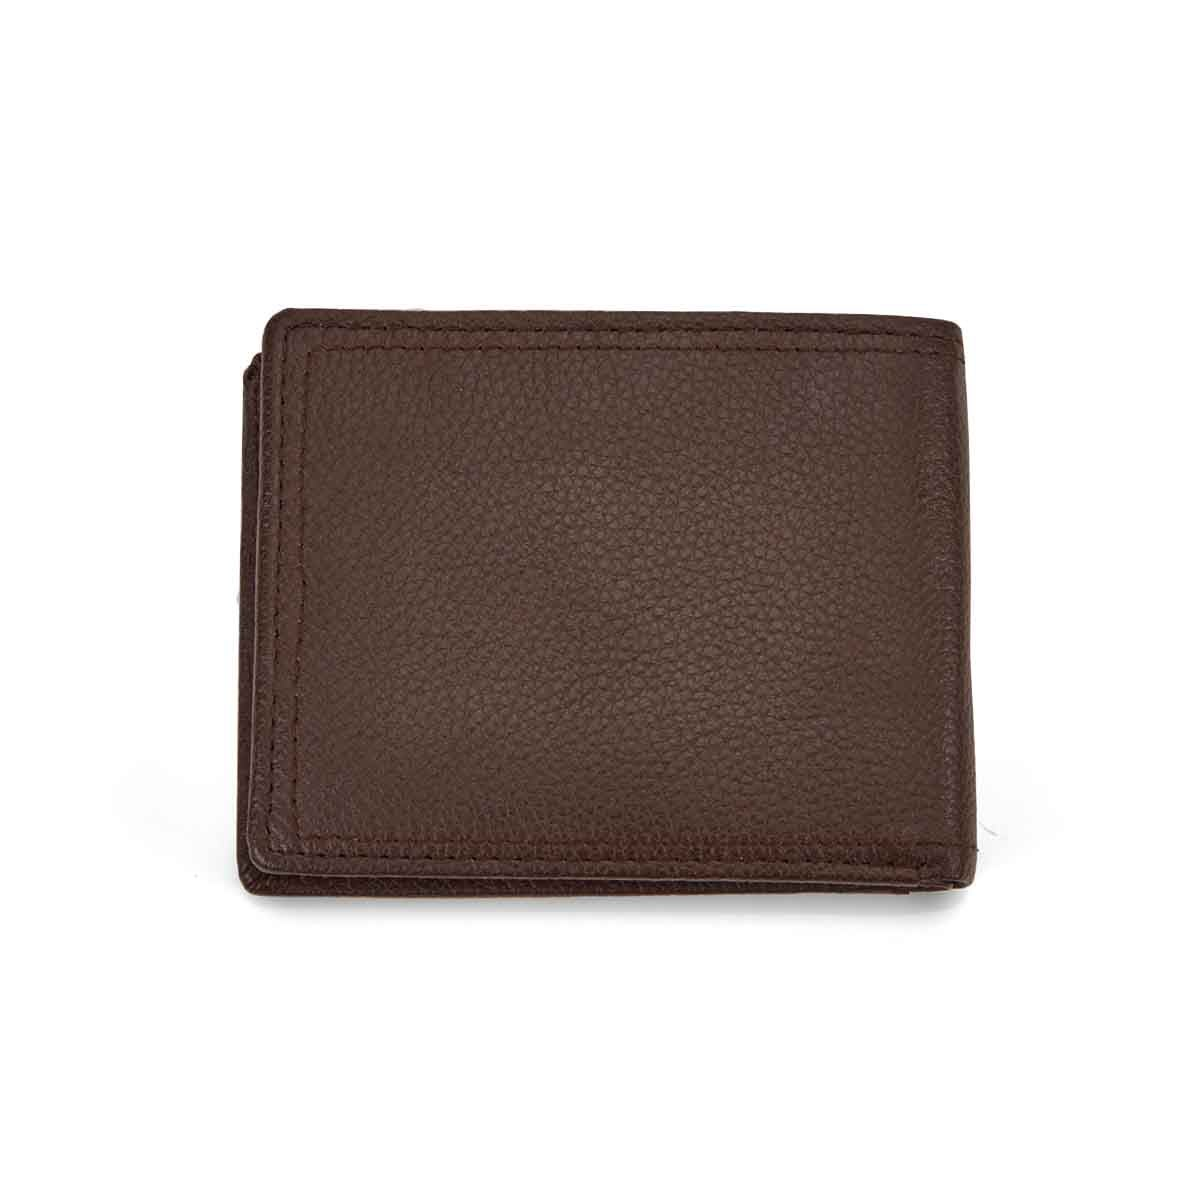 Mns brown RFID w/ID flap billfold